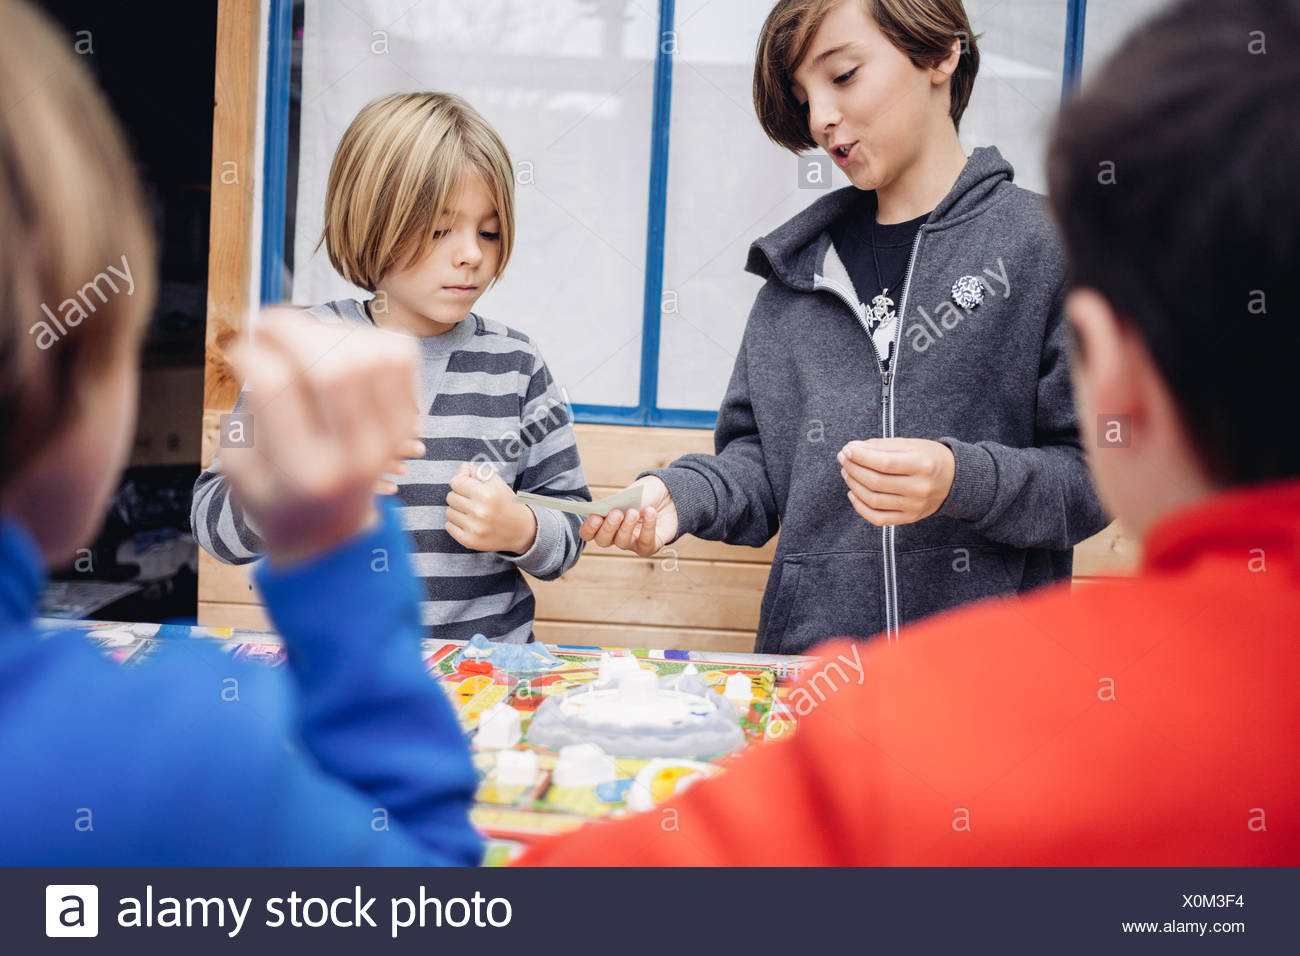 Children playing with toys - Stock Image